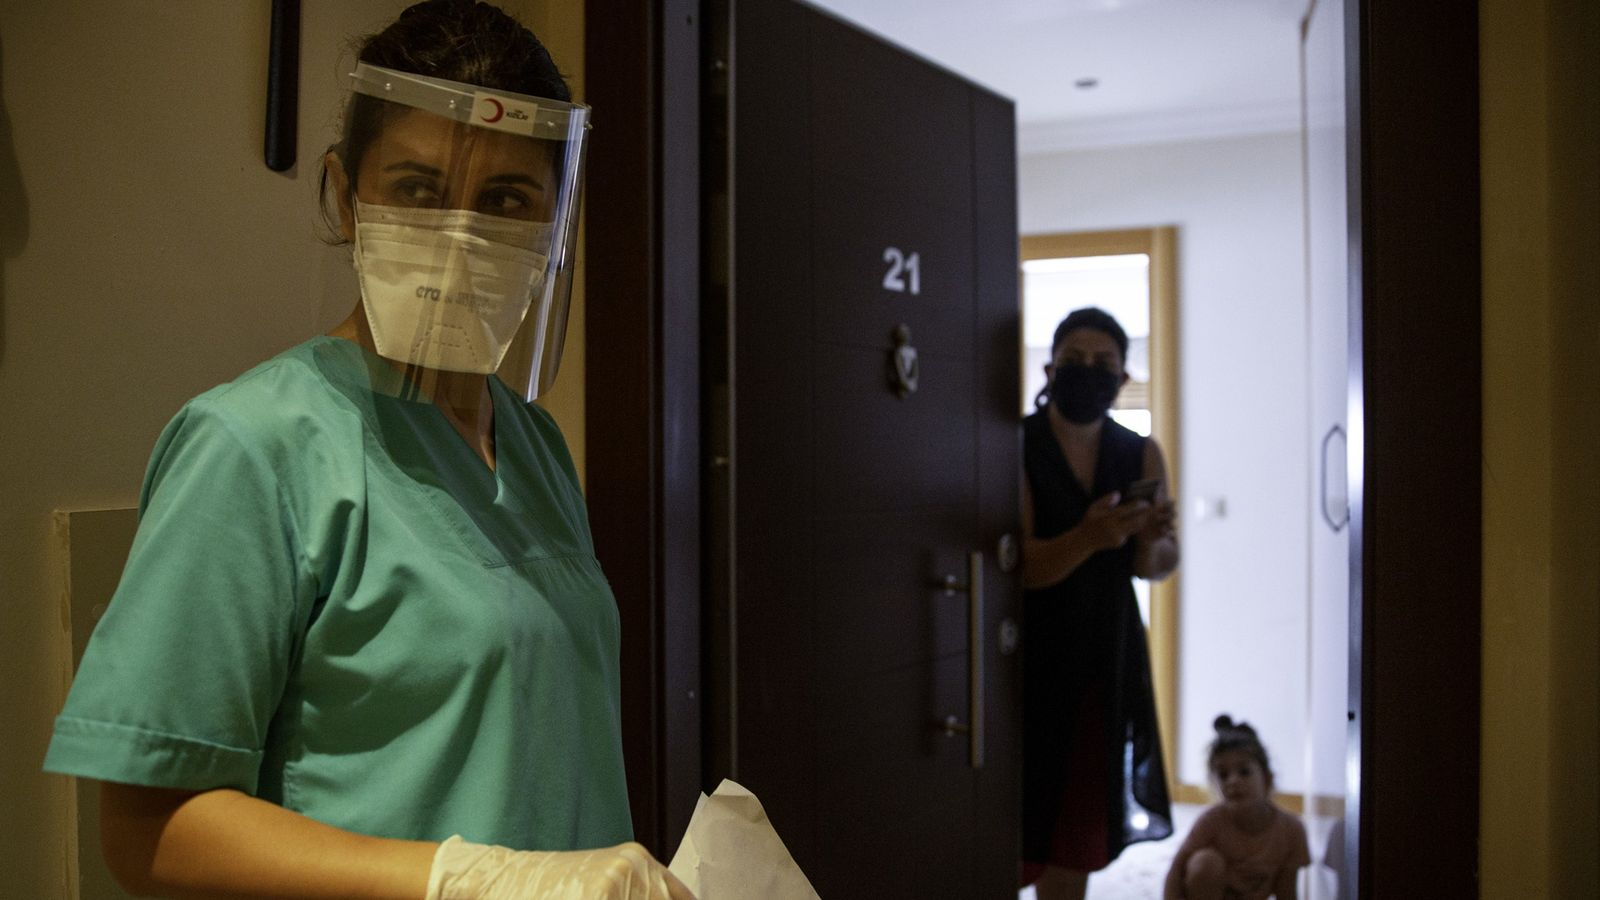 Dr Gökçe Ünal, a dentist who has been reassigned as a contact tracer, is talking to ...